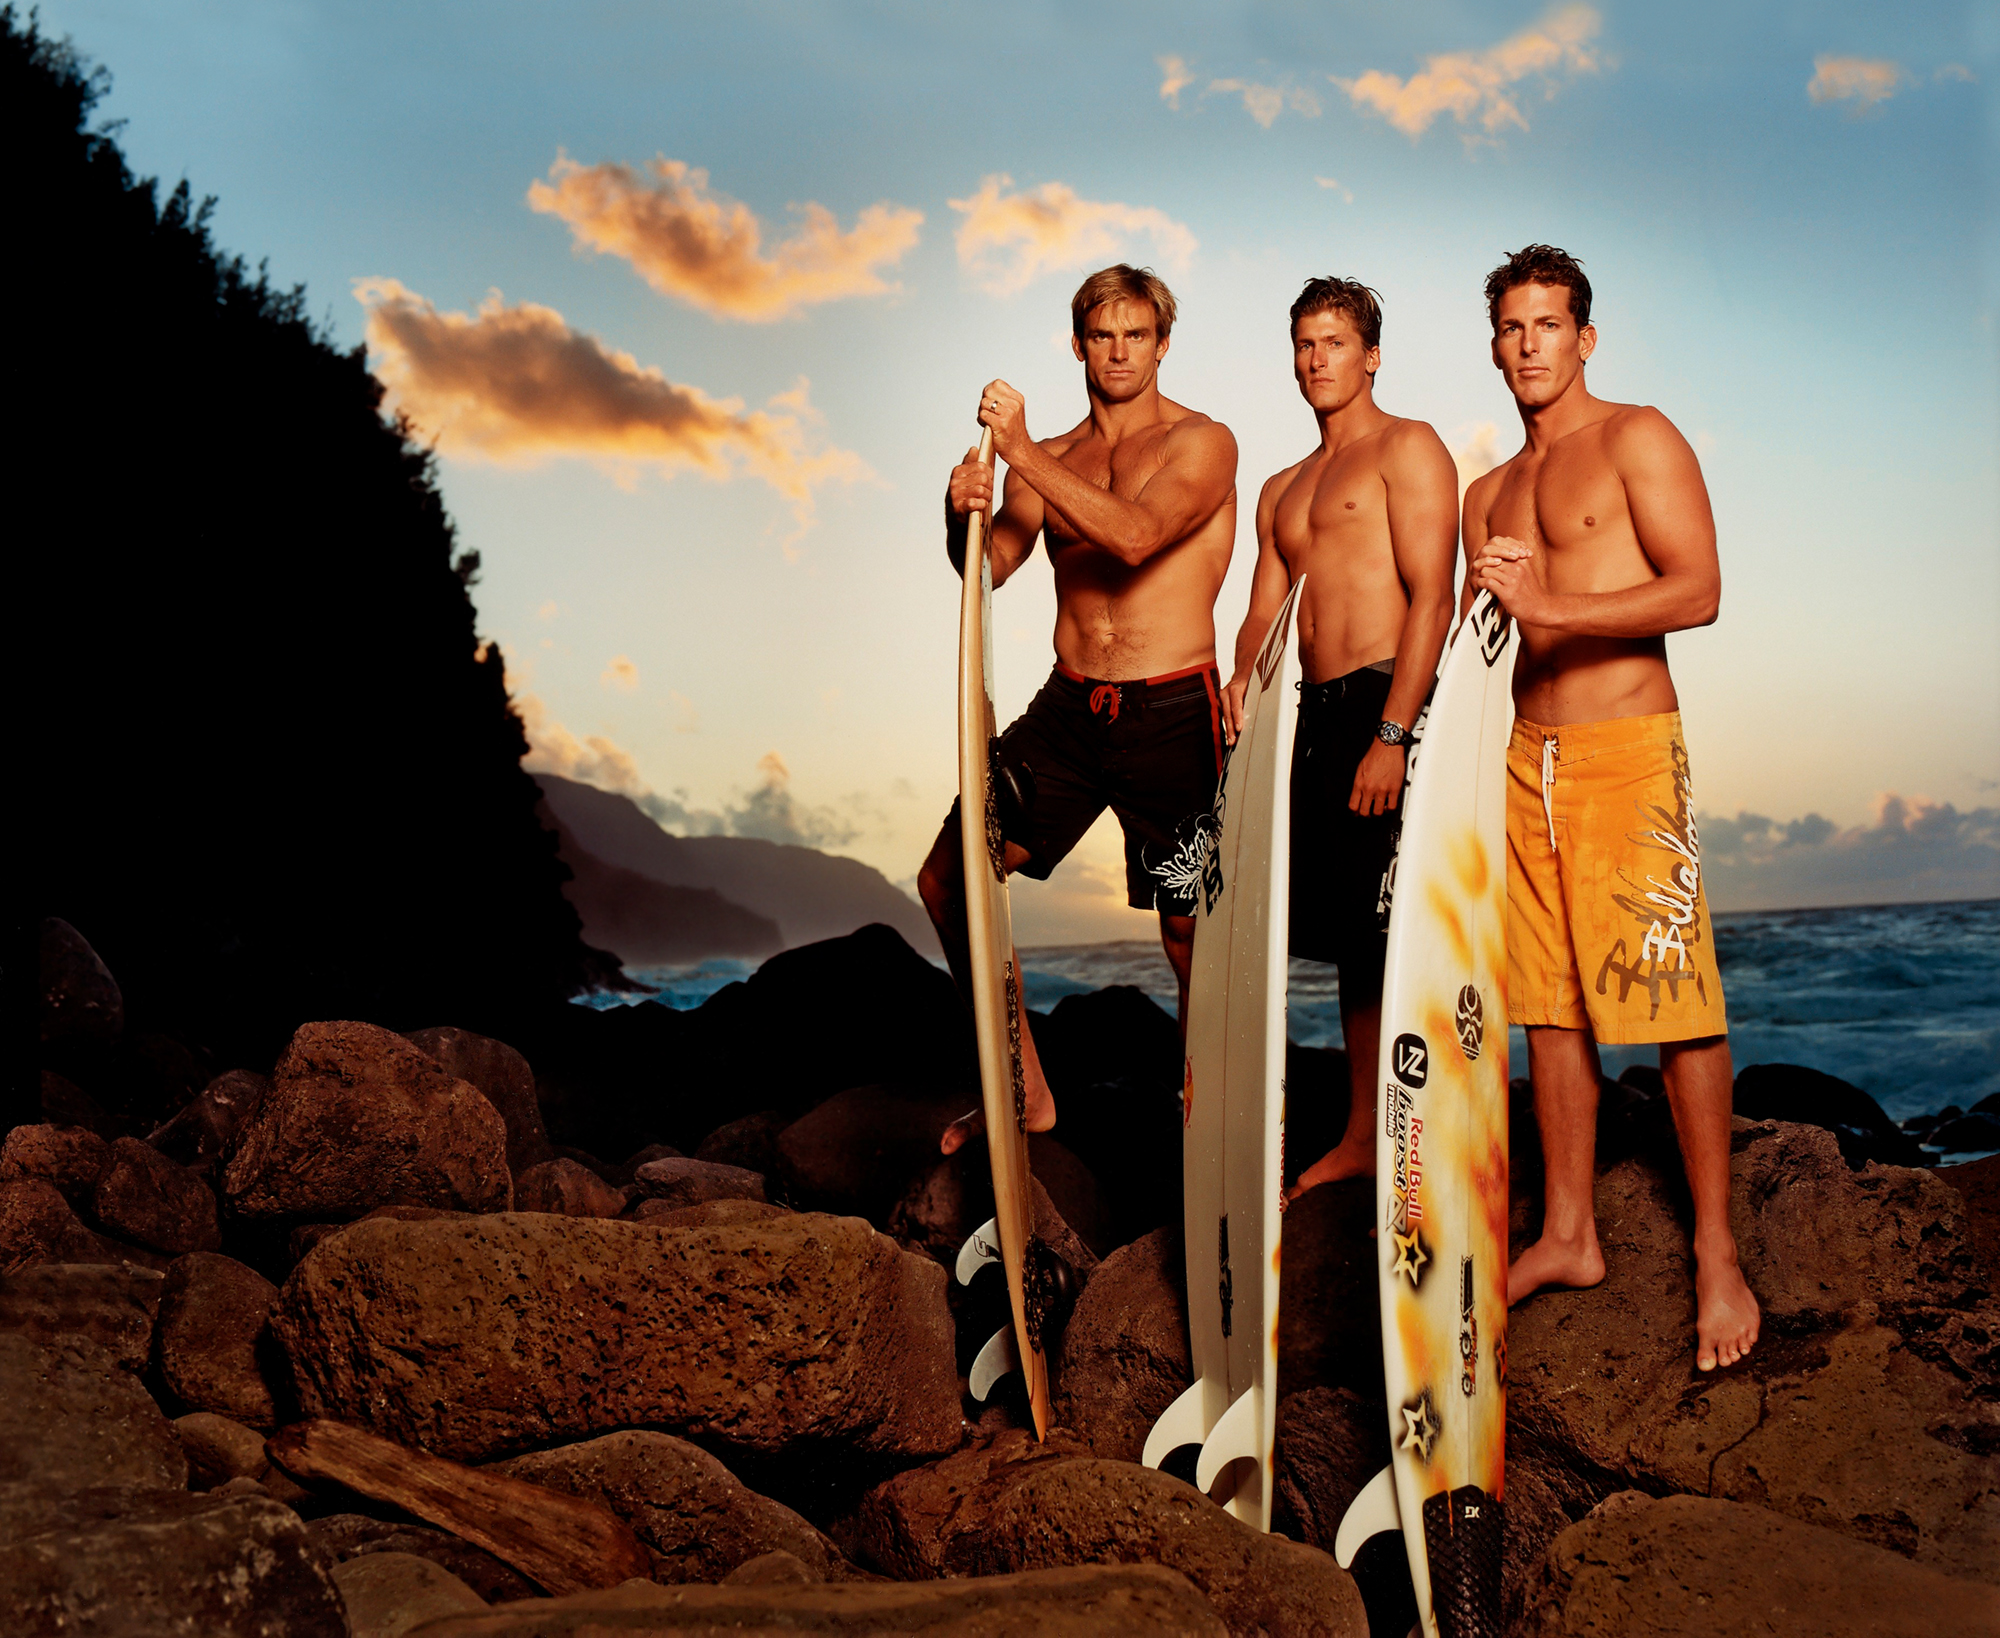 Laird Hamilton, Bruce Irons & Andy Irons, 2005